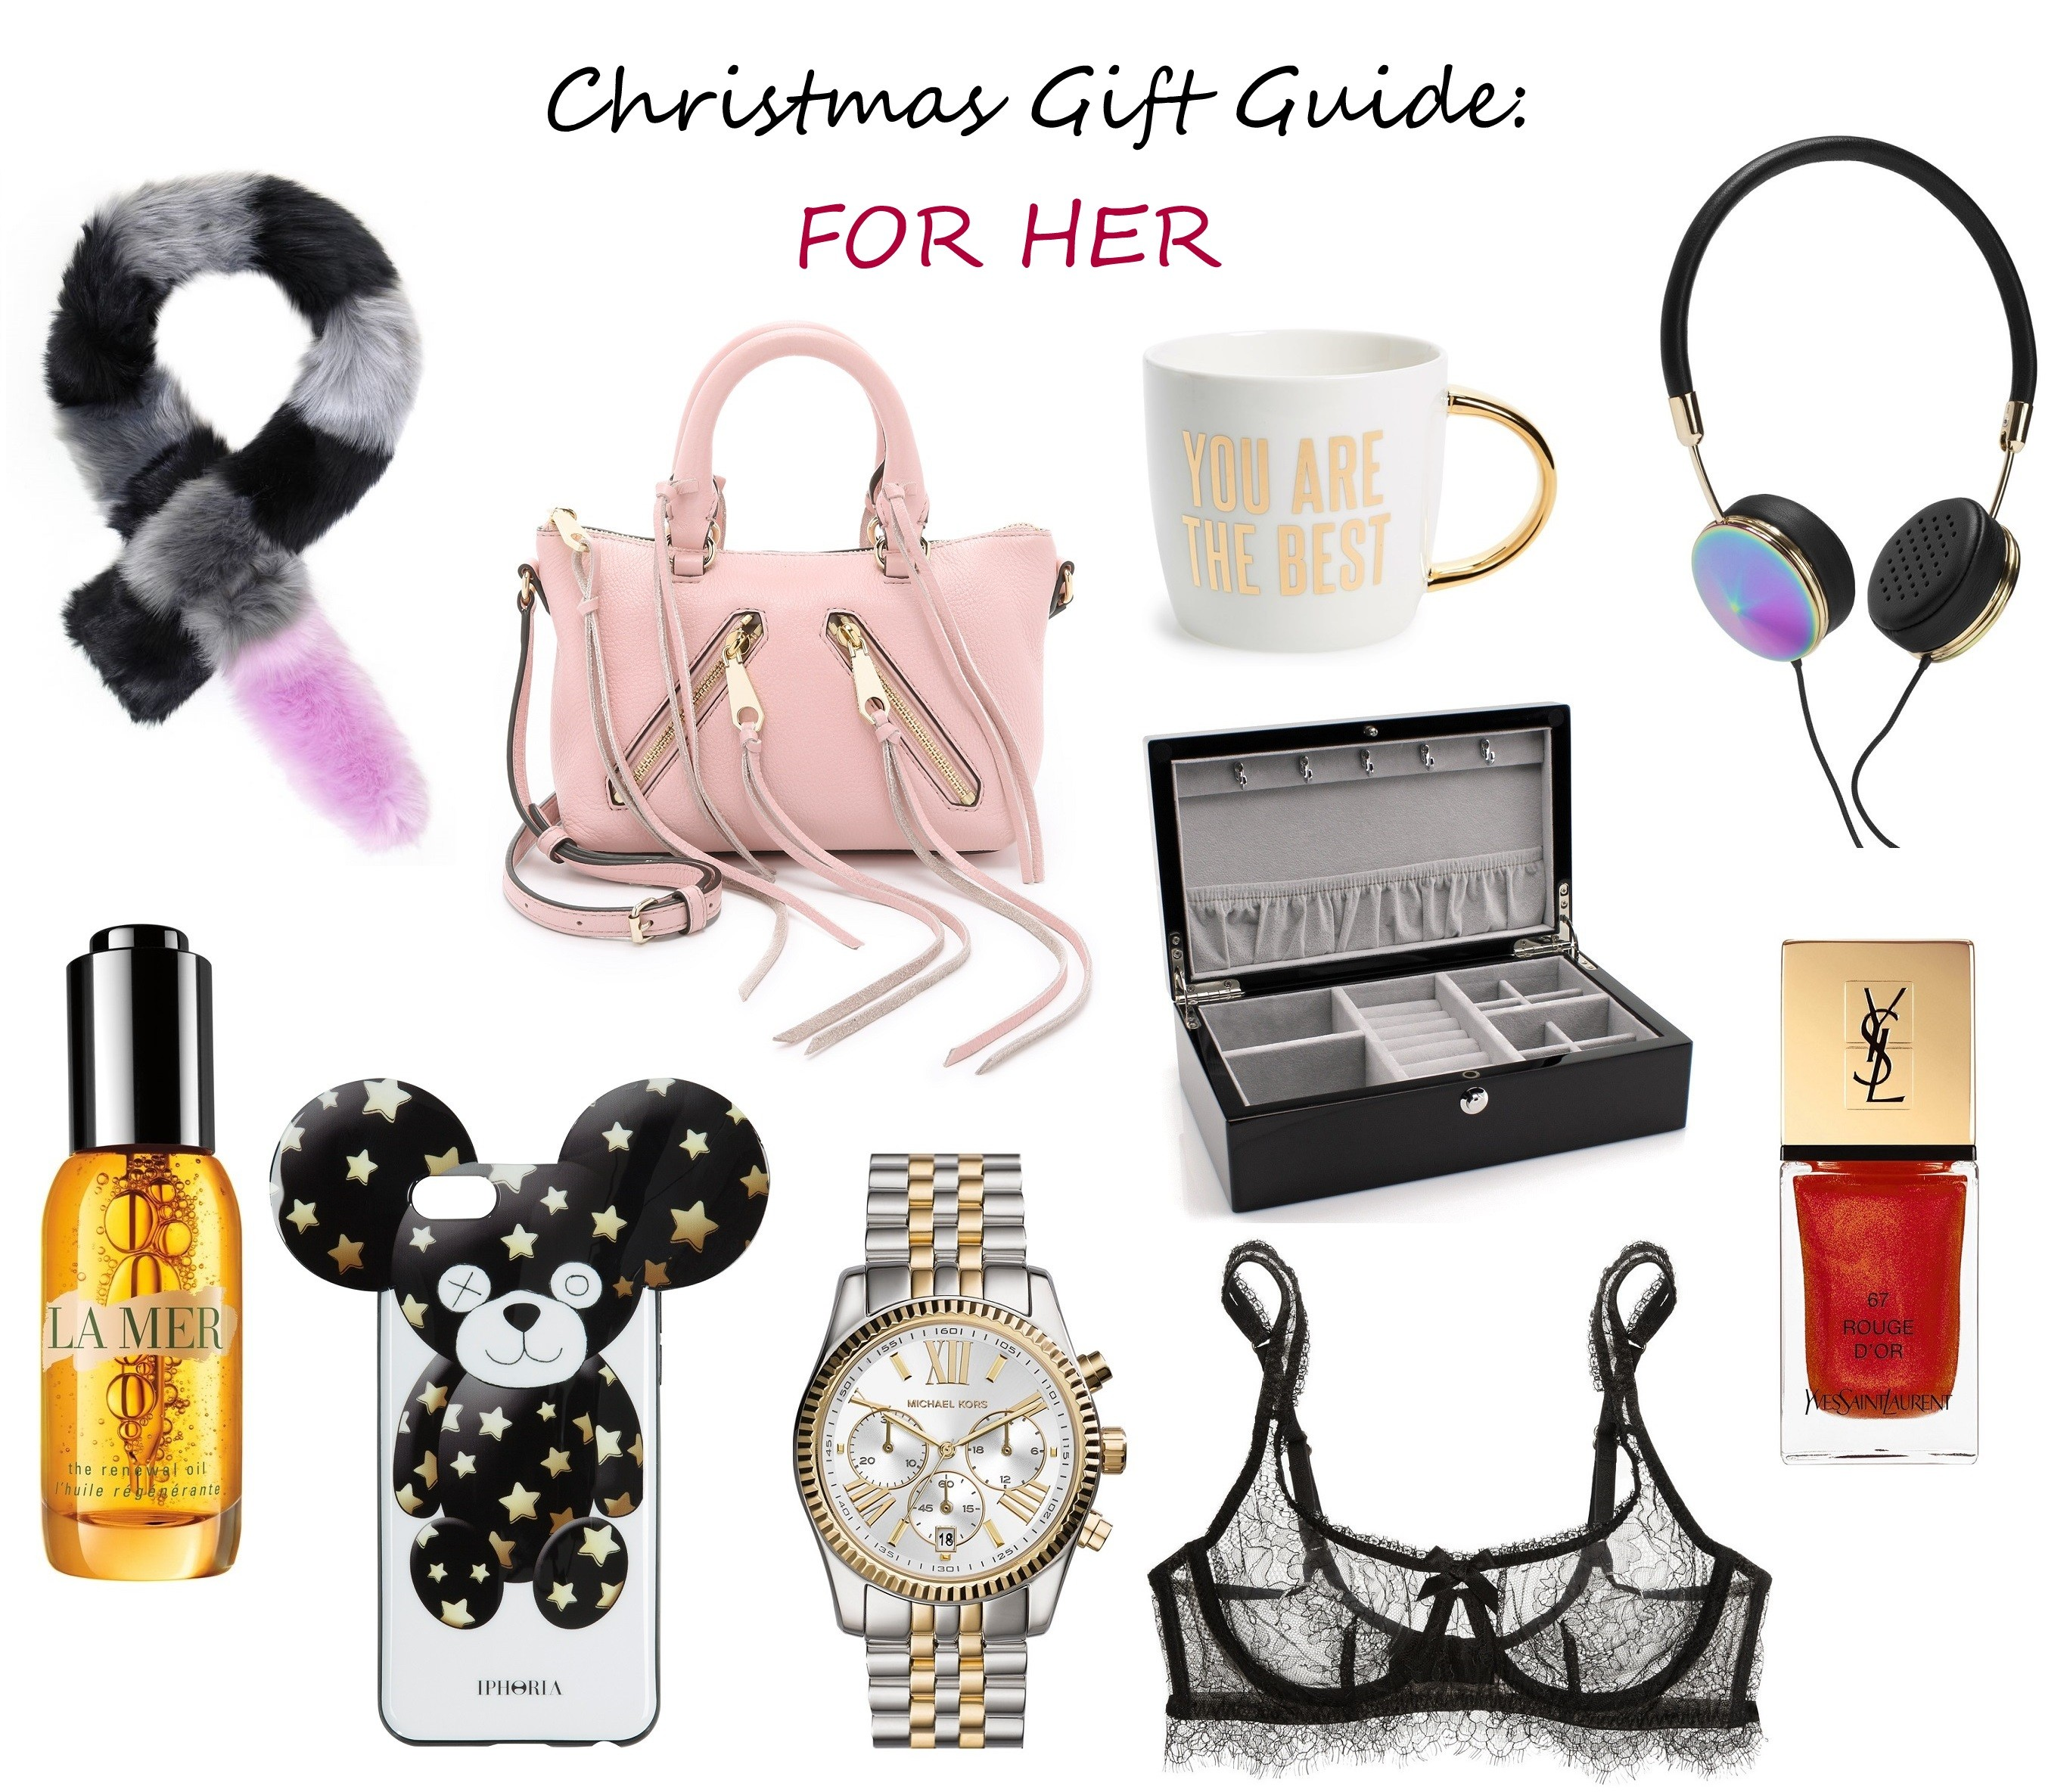 christmas gift guide for her presents for girlfrend mother wife sister